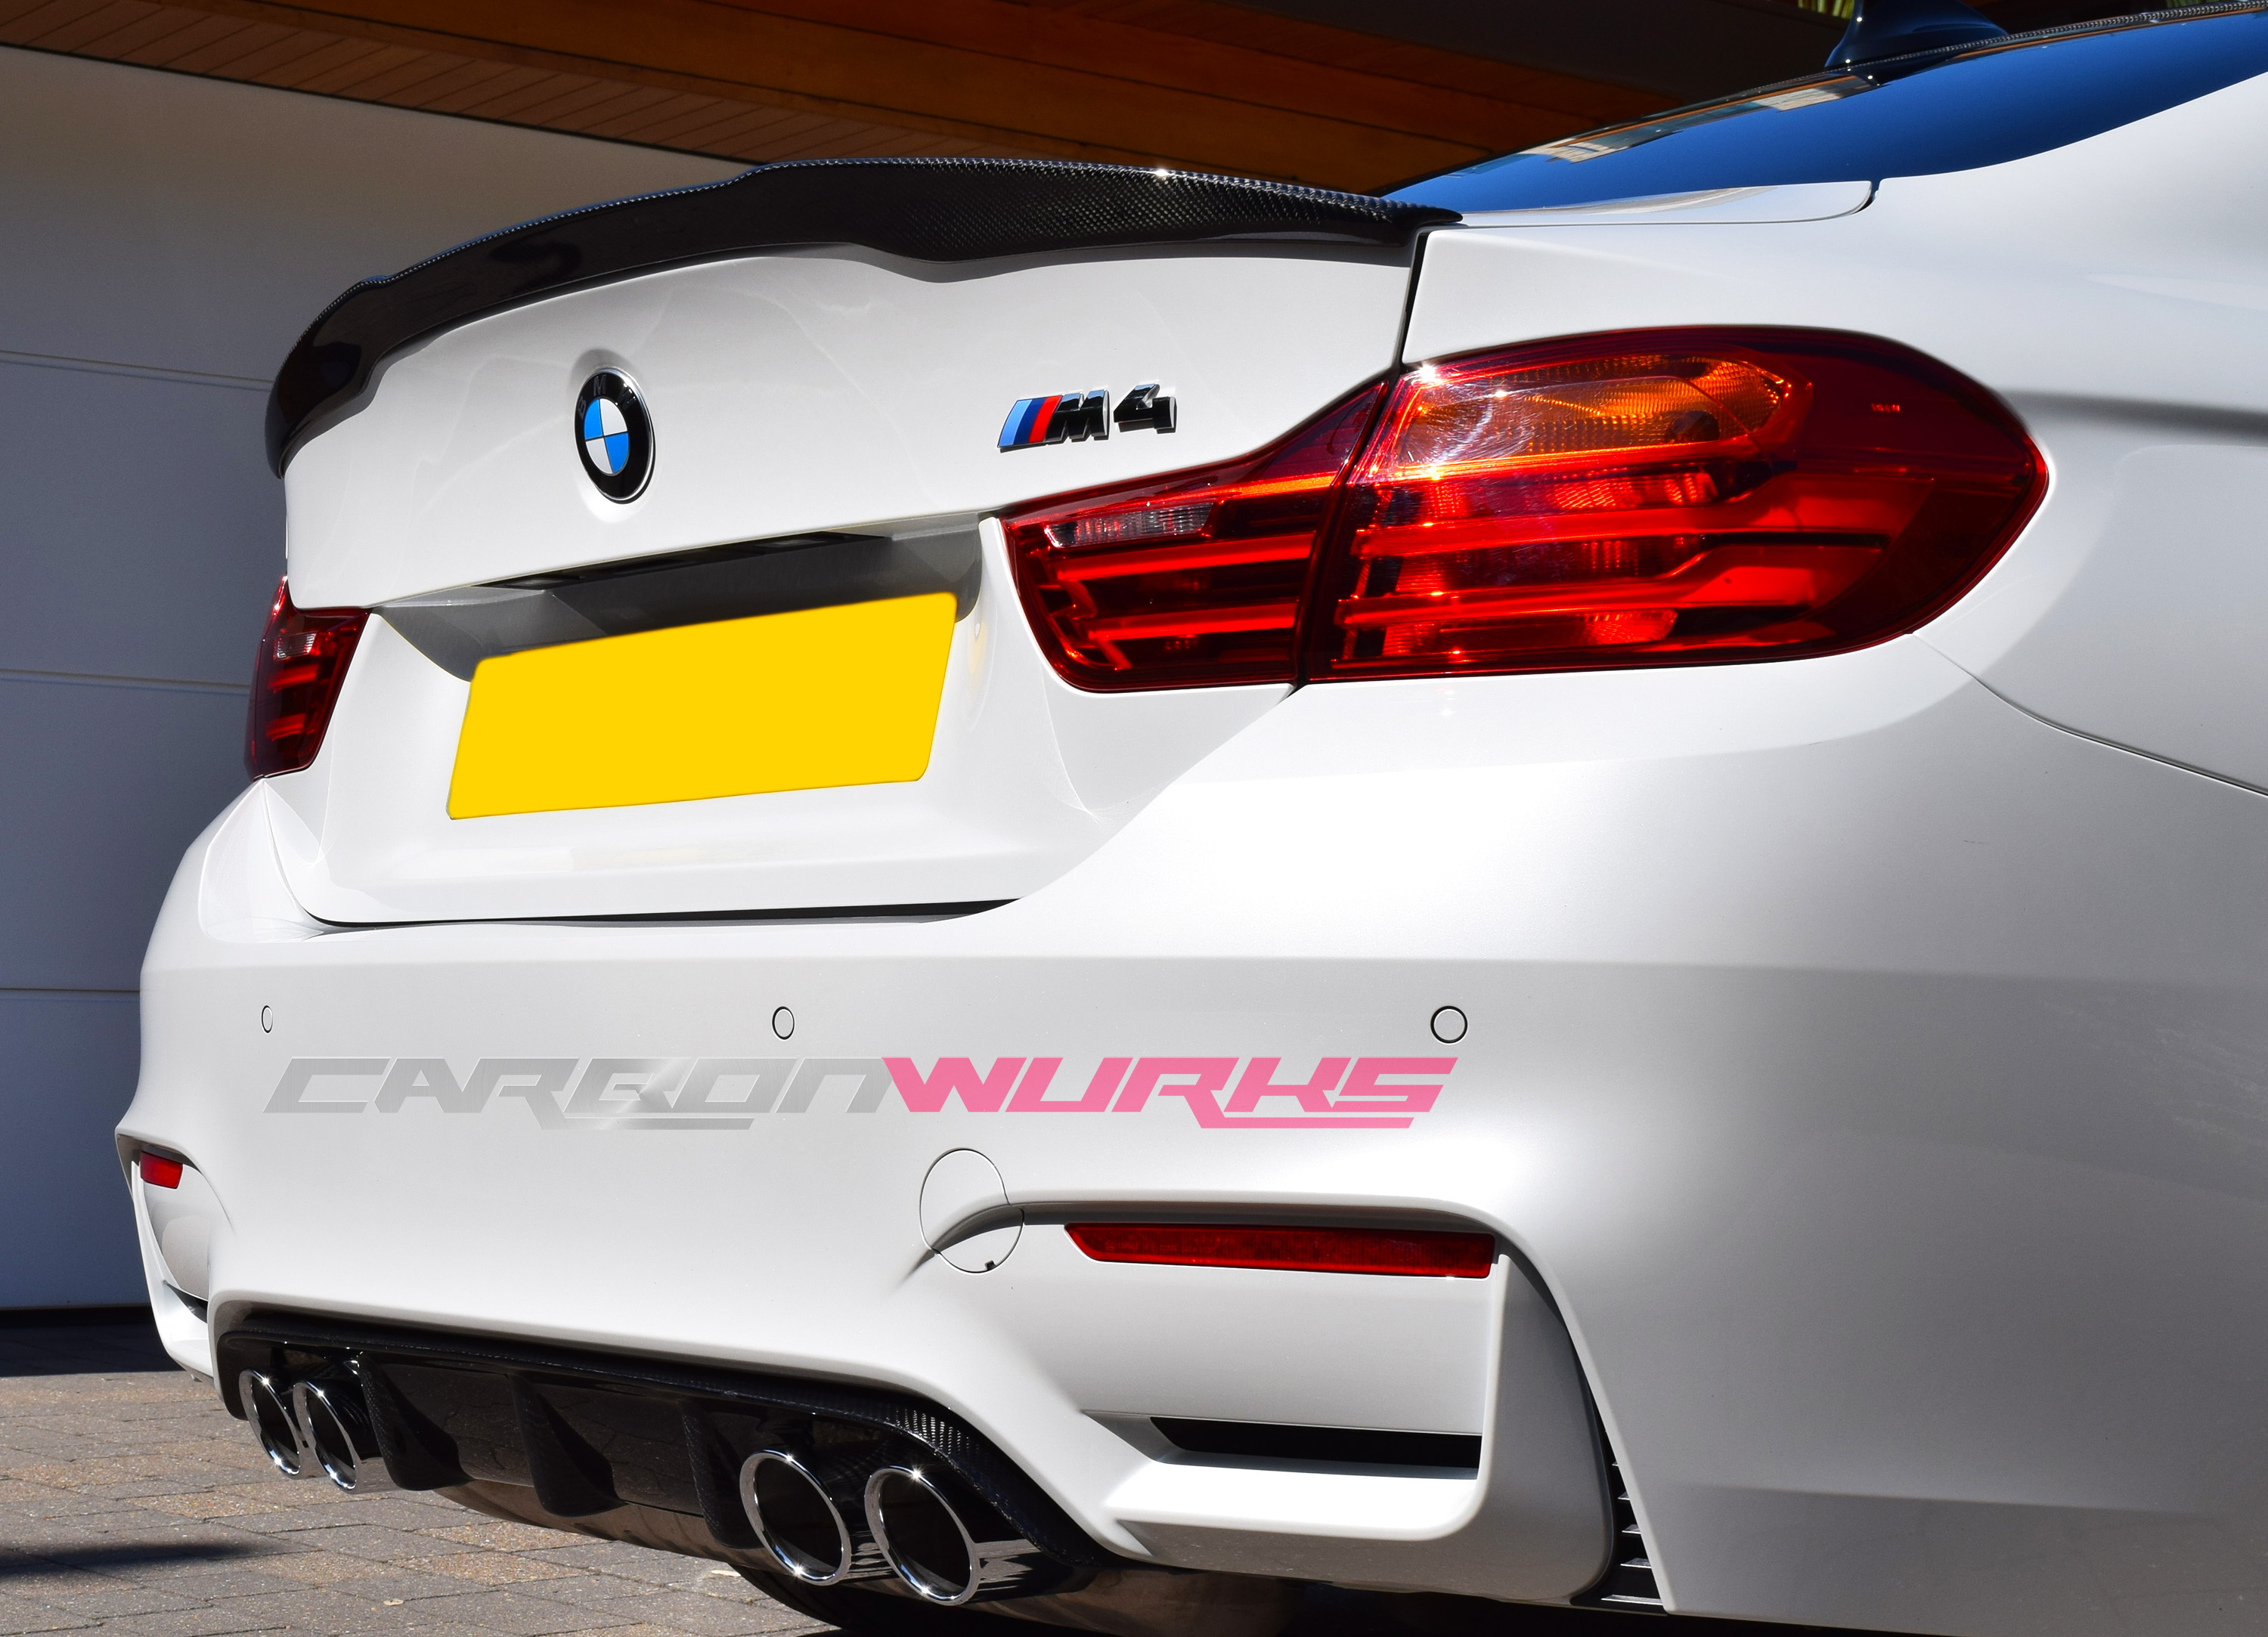 carbonwurks custom carbon fibrebmw m4 m performance coupe. Black Bedroom Furniture Sets. Home Design Ideas